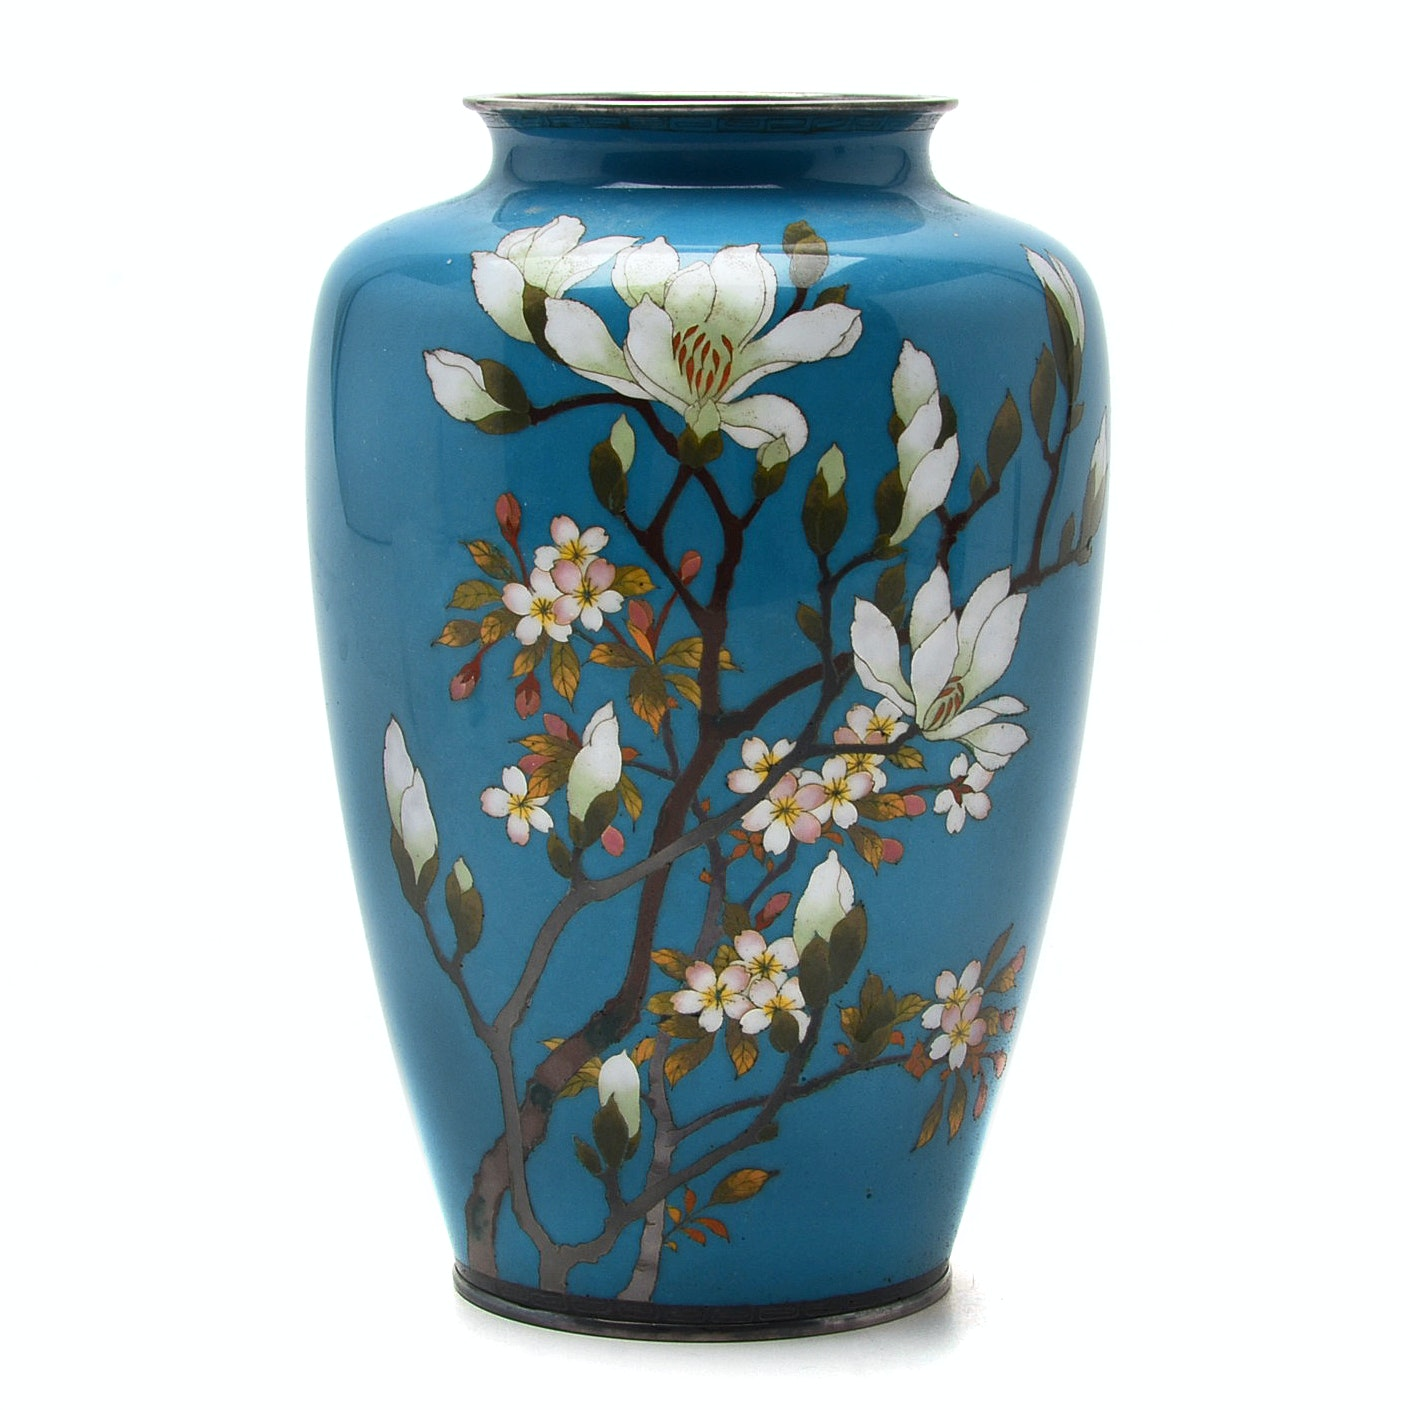 Early 20th Century Japanese Cloisonné Silver Wire Vase